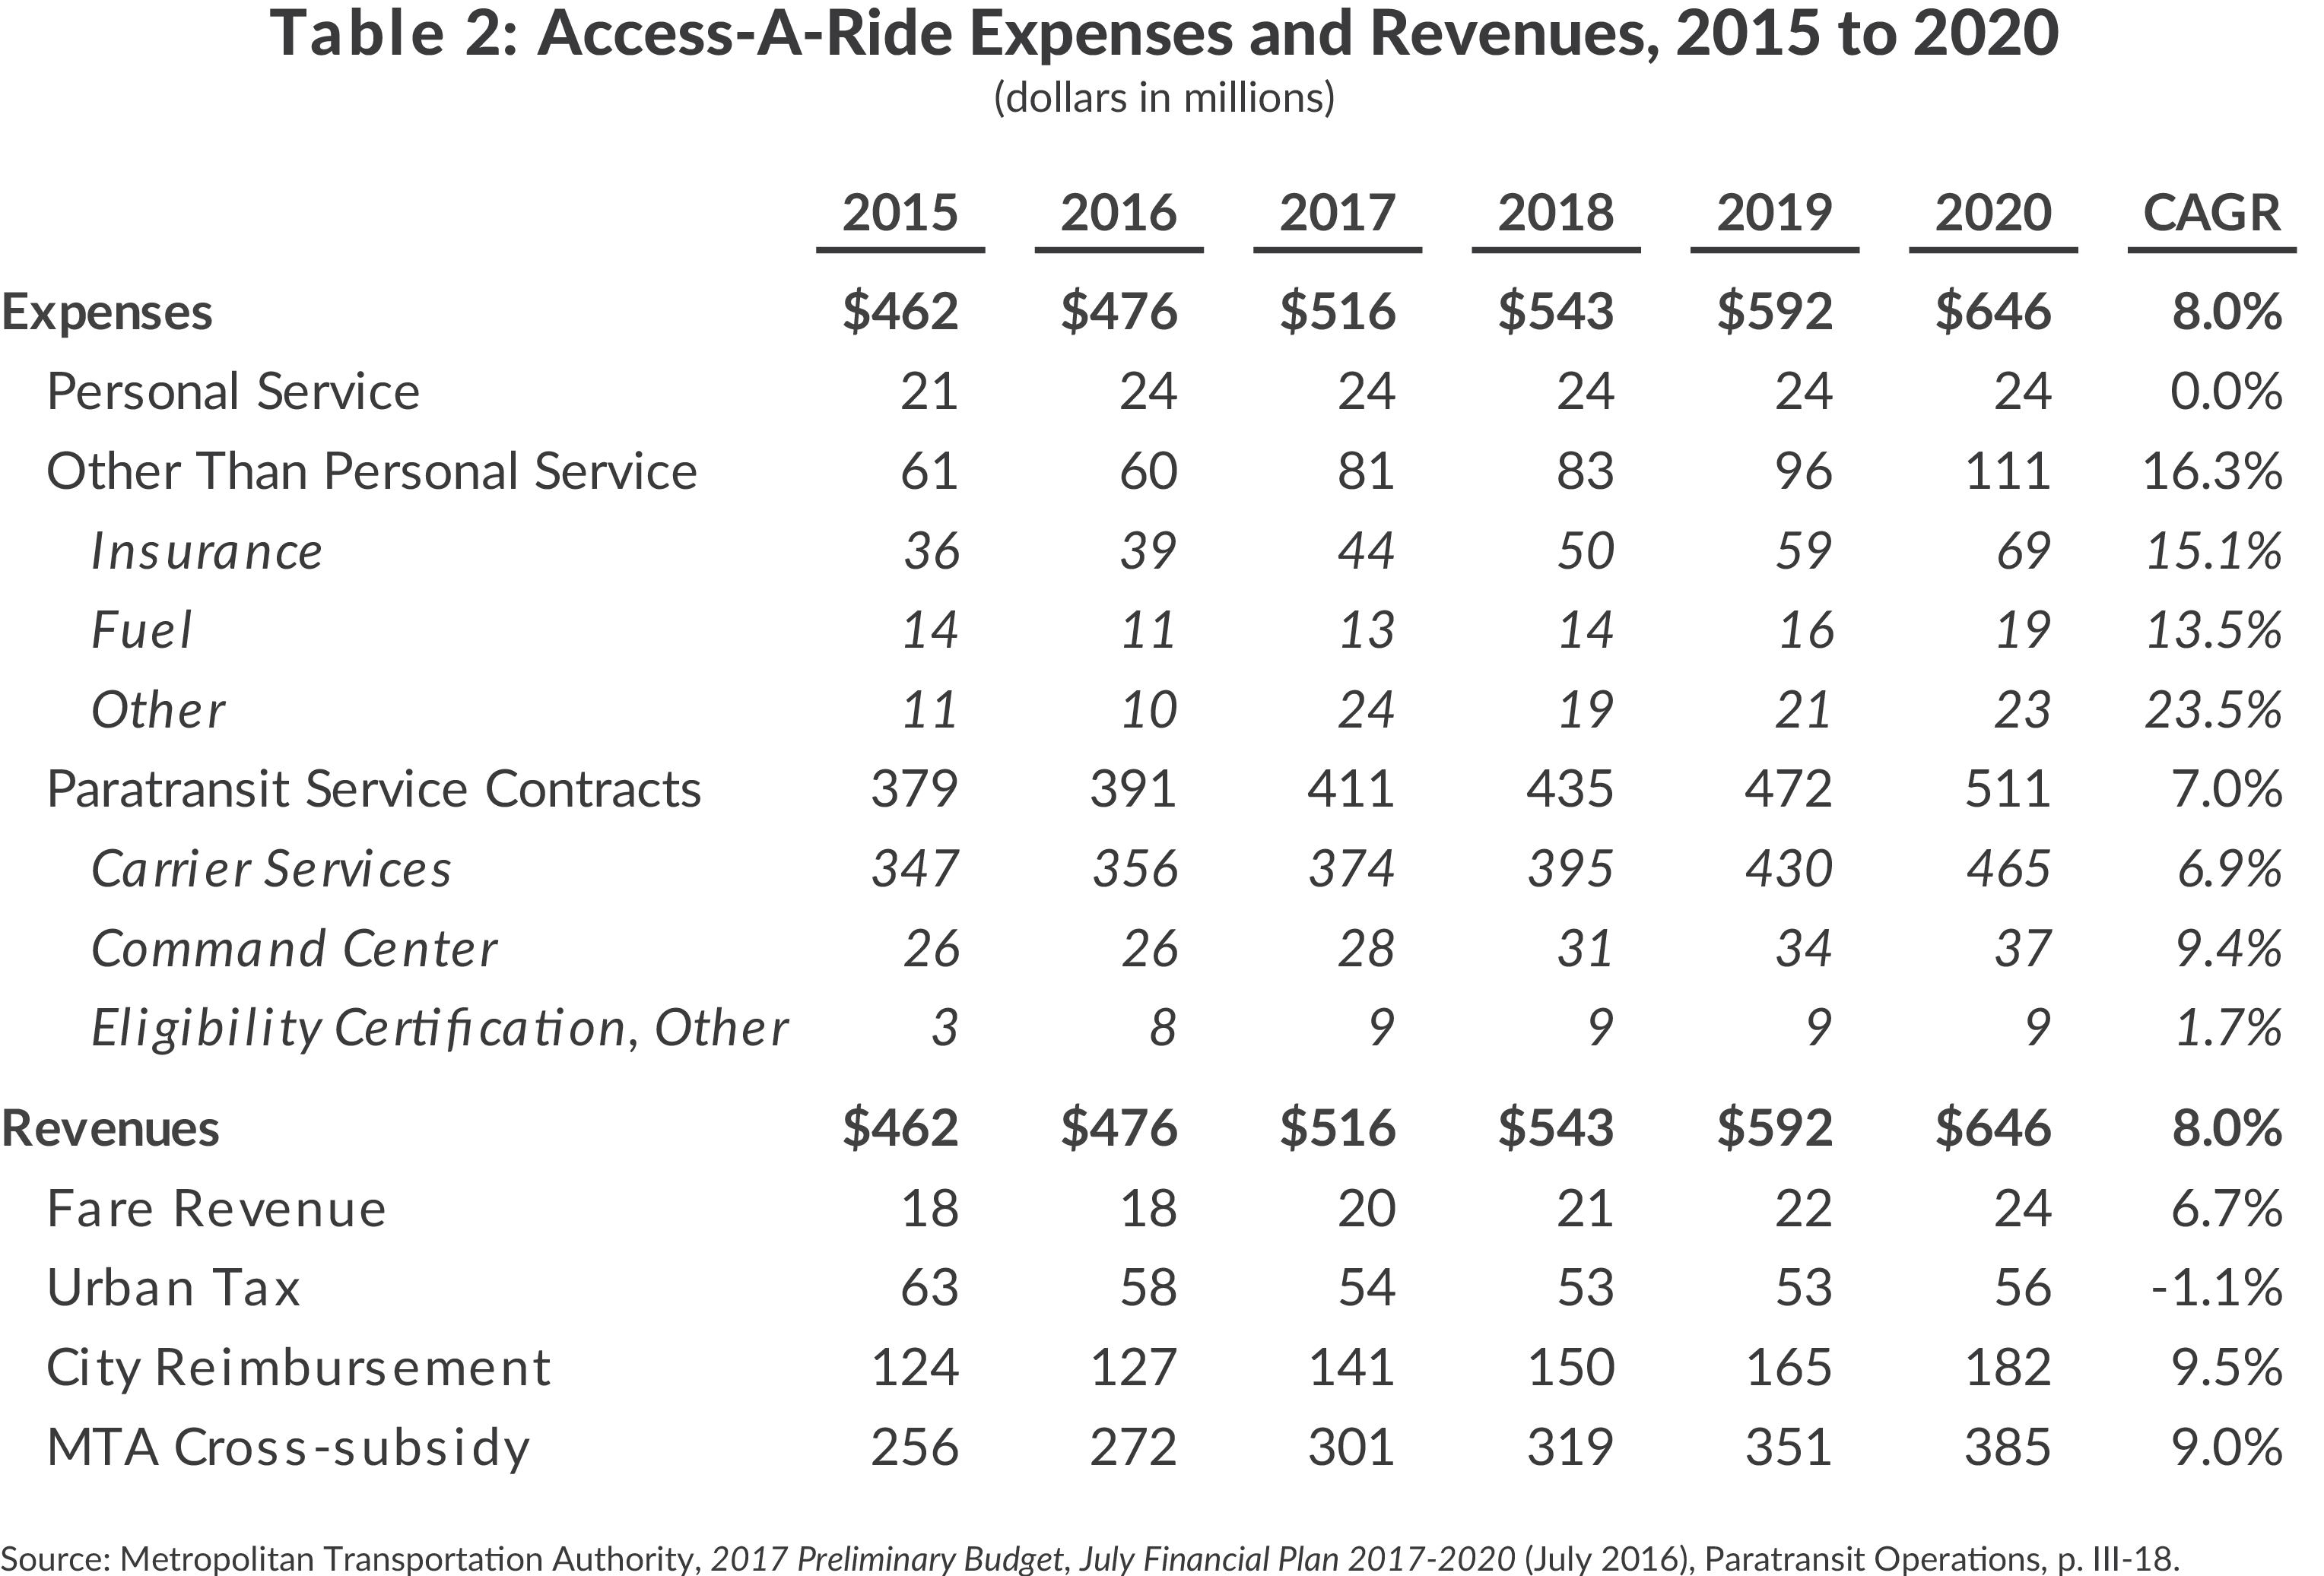 Access-a-Ride Expenses and Revenues, 2015 to 2020